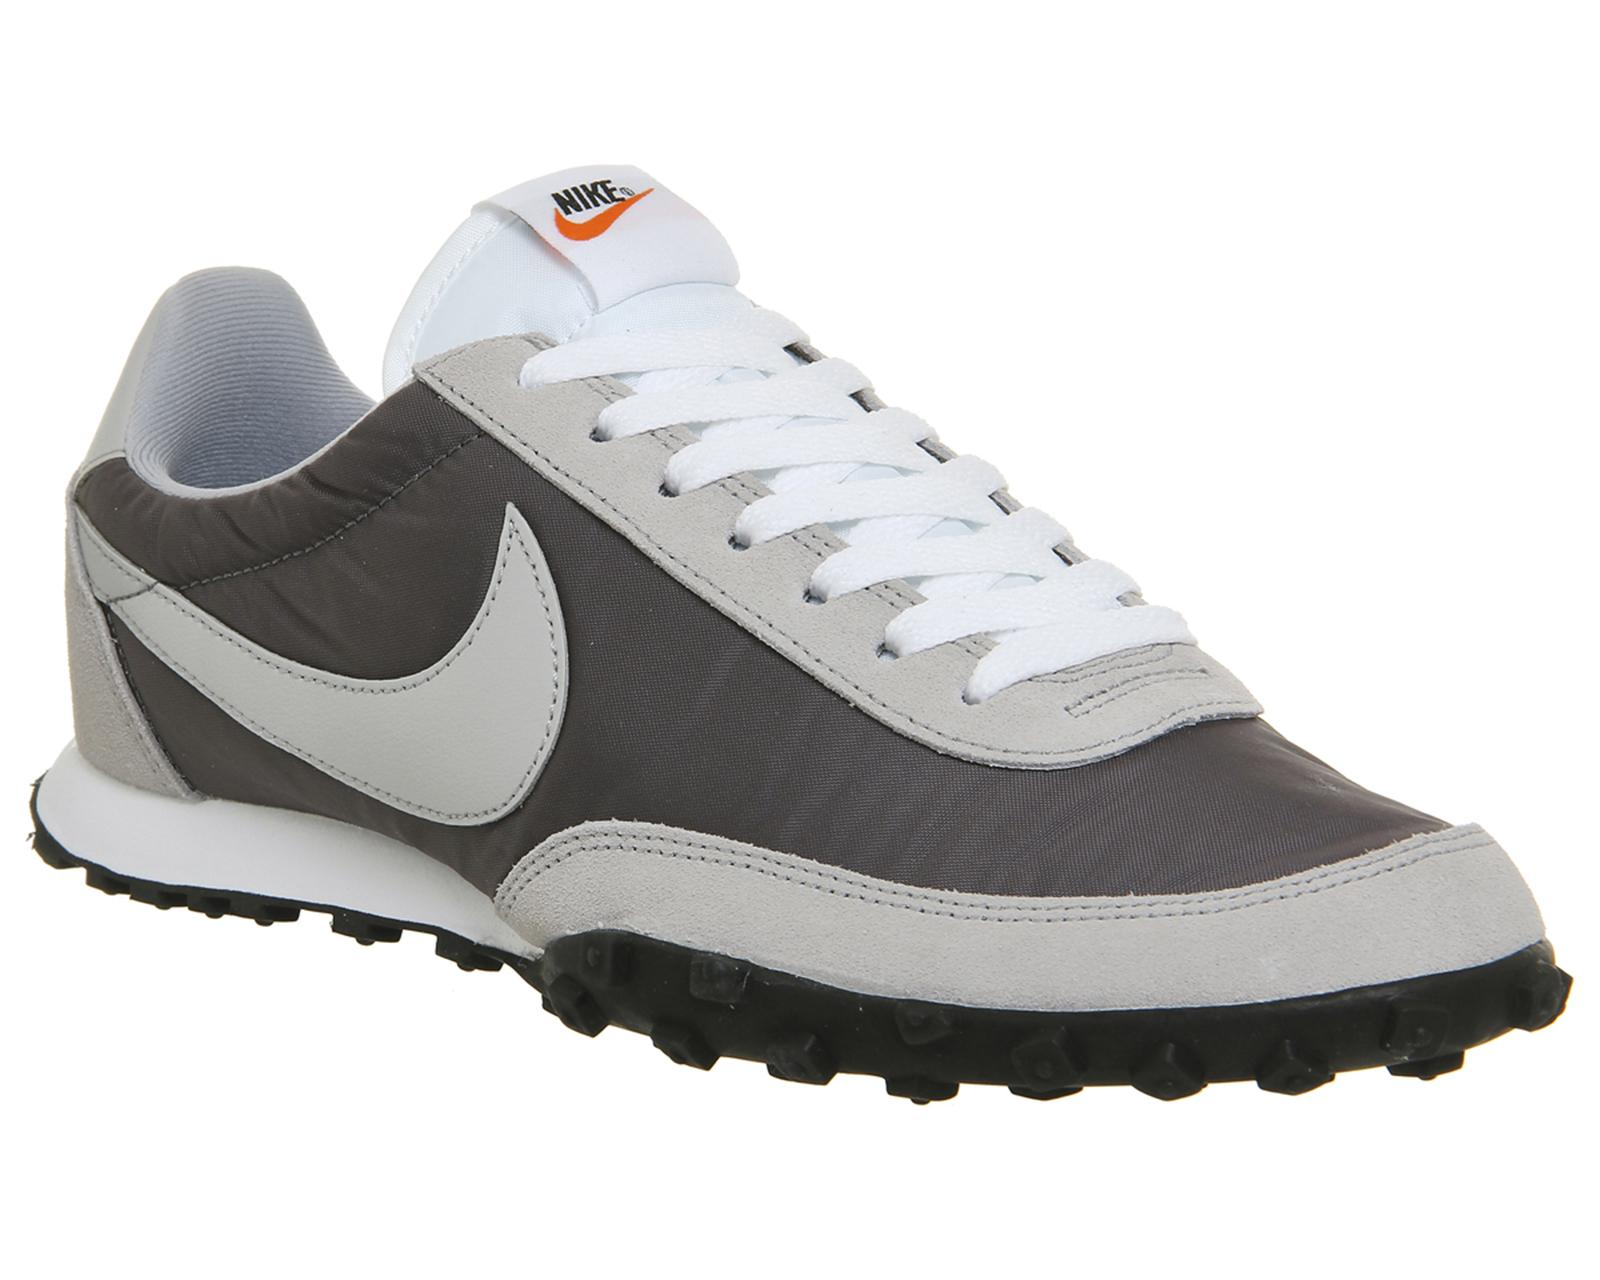 nike waffle racer in gray for men lyst. Black Bedroom Furniture Sets. Home Design Ideas